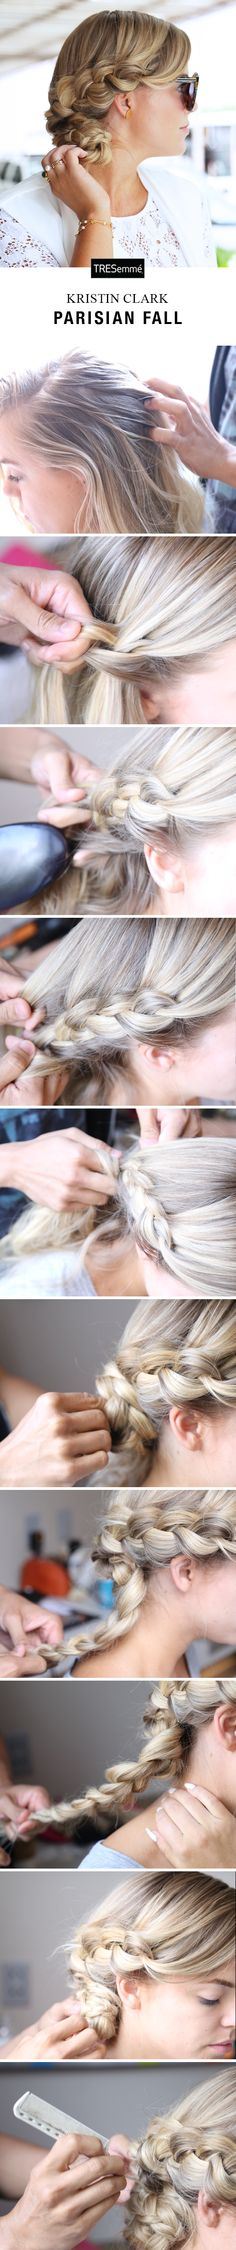 """TRESemmé & Kristin Clark of Living in Color Print nicknamed this cross between a French & Waterfall Braid the """"Parisian Fall"""" for its Miami Swim debut. To get the look, texturize hair with TRES Perfectly (un)Done Sea Foam. Begin a Waterfall Braid on one side of your head. When you reach the nape of your neck, gather the hair from the other side & begin French braiding it into the Waterfall Braid. Secure & twist into a low bun, pinning in place. Finish with TRES Perfectly (un)Done Hairspray."""